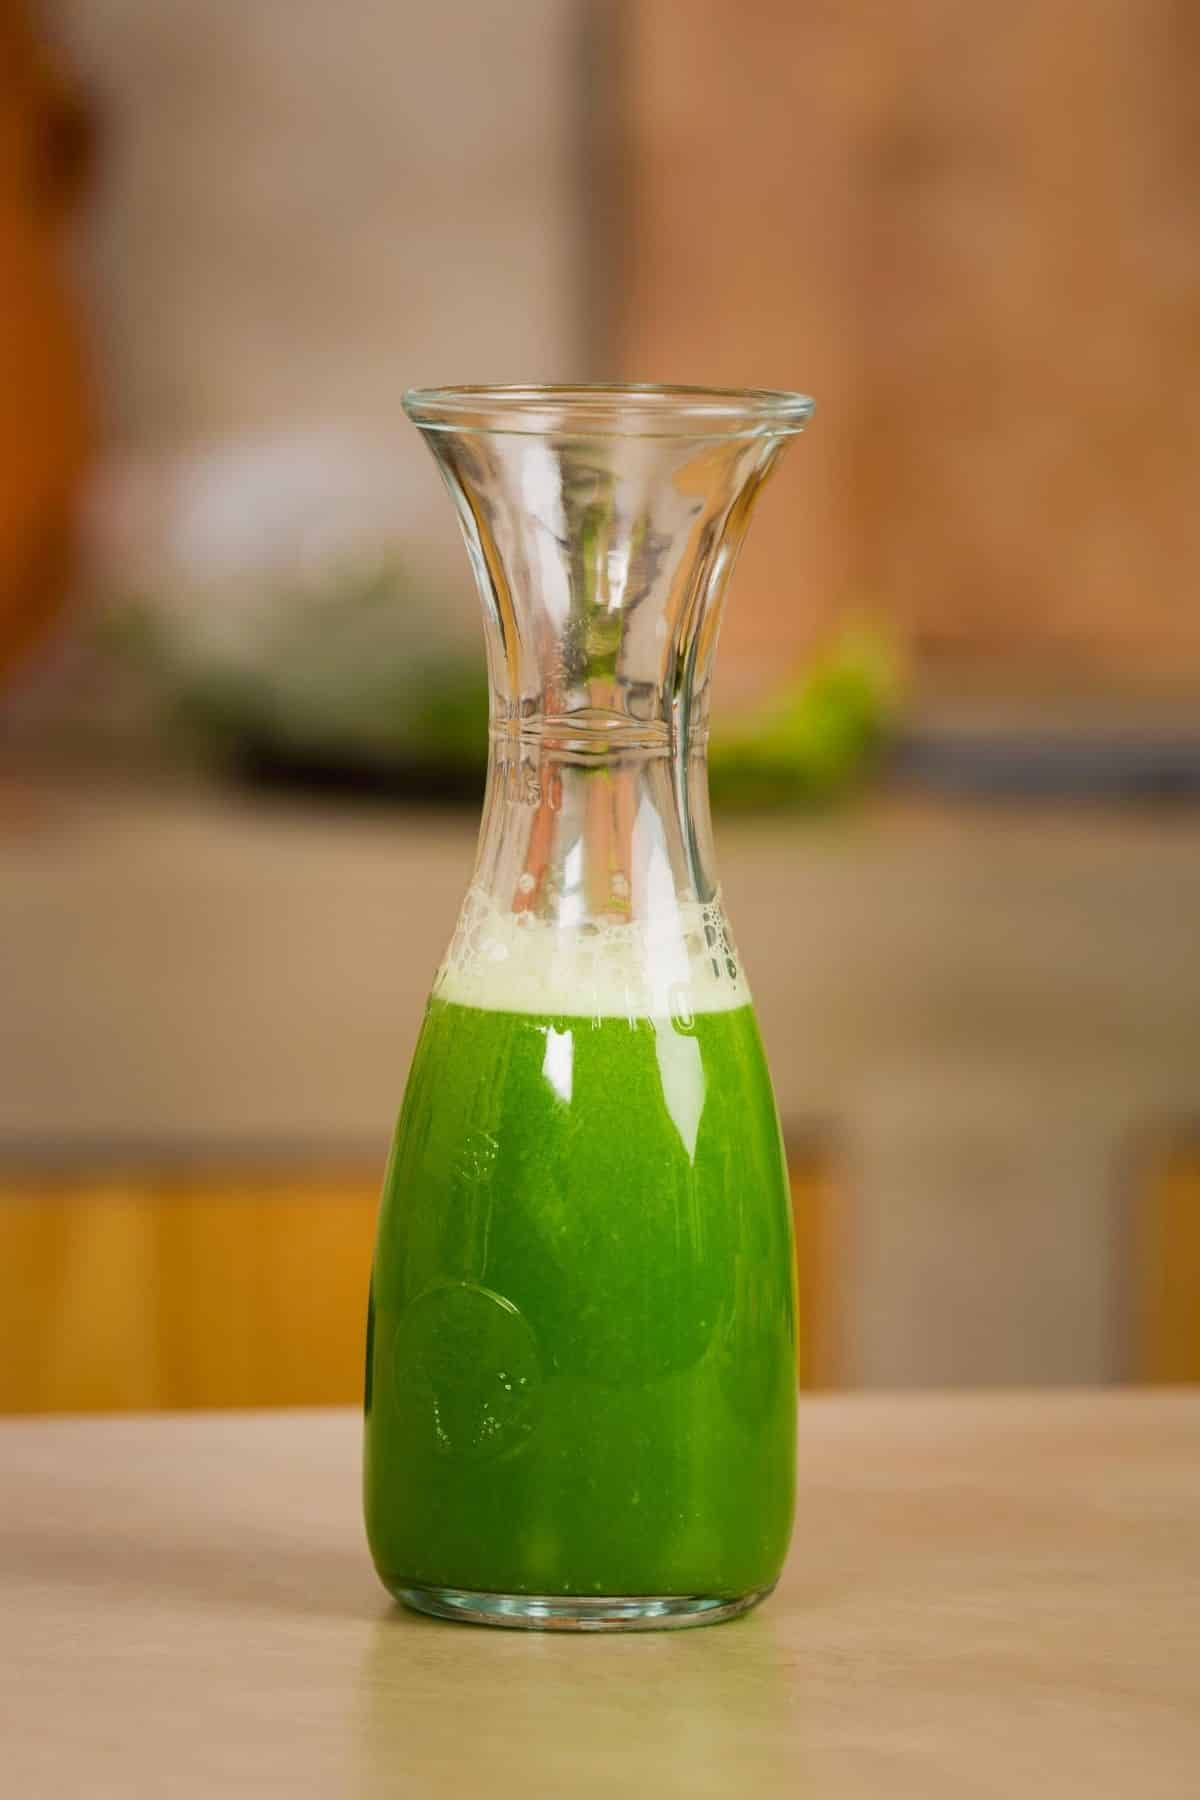 carafe of green juice on a table